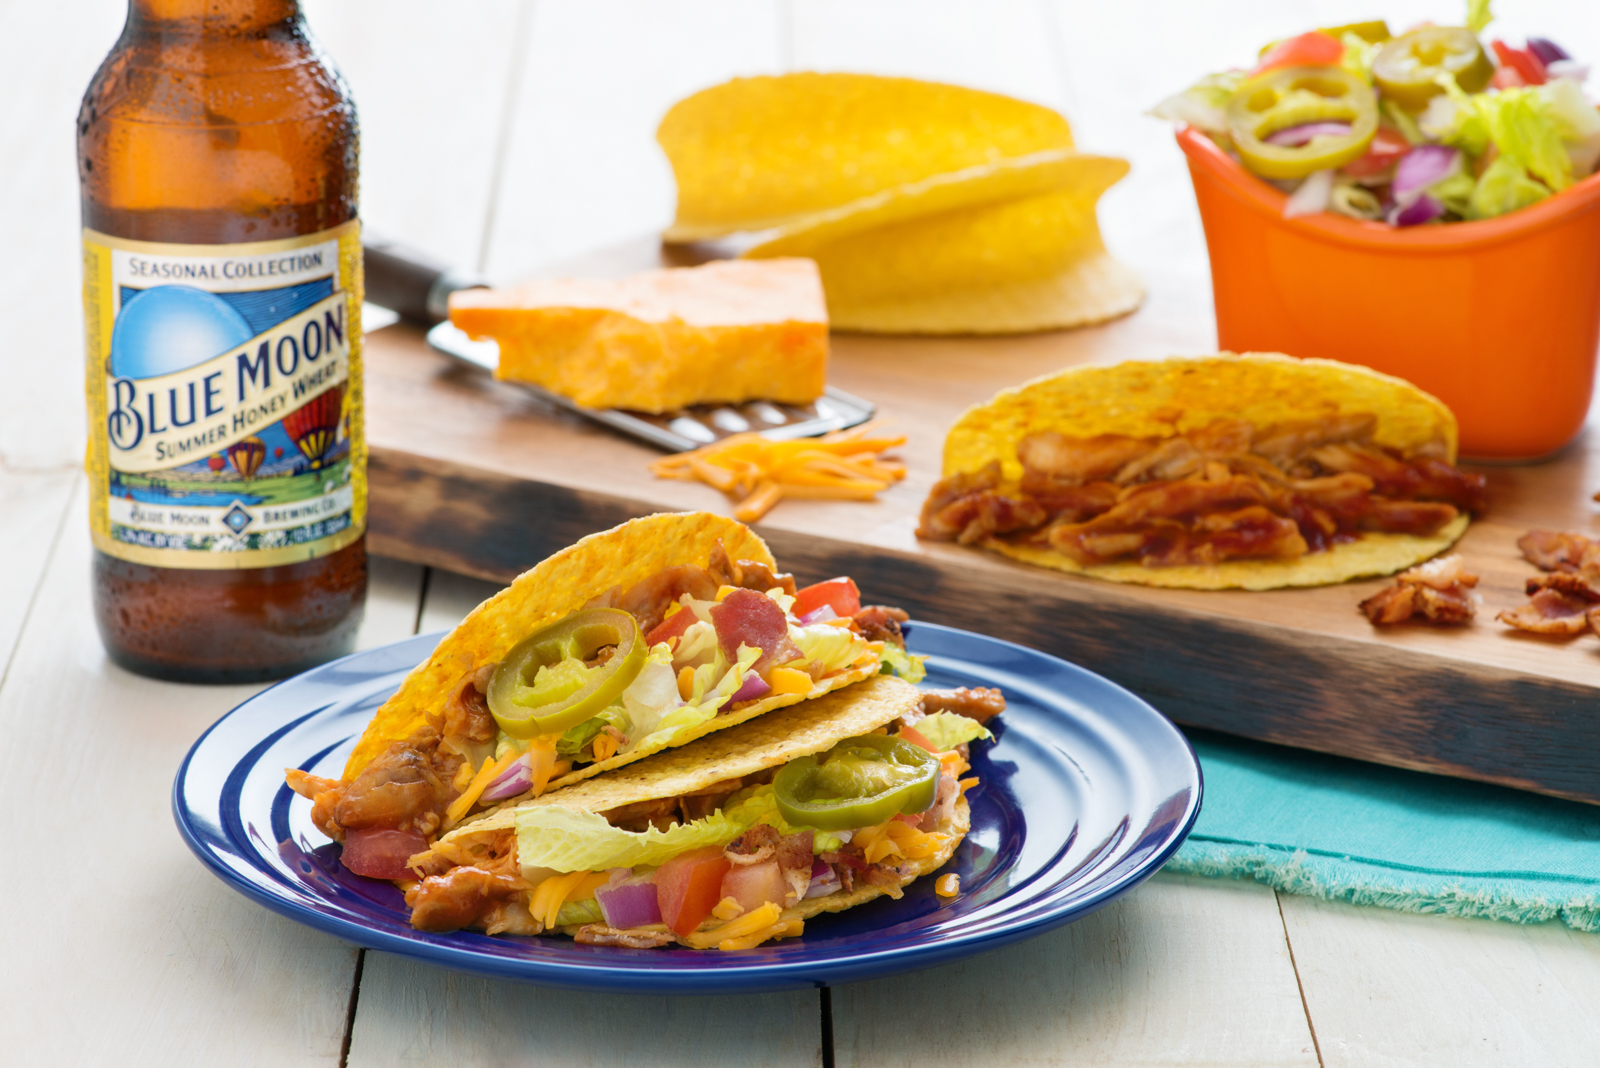 Blue Moon Beer-Brined Smoked BBQ Chicken Hard Shell Taco with the Works